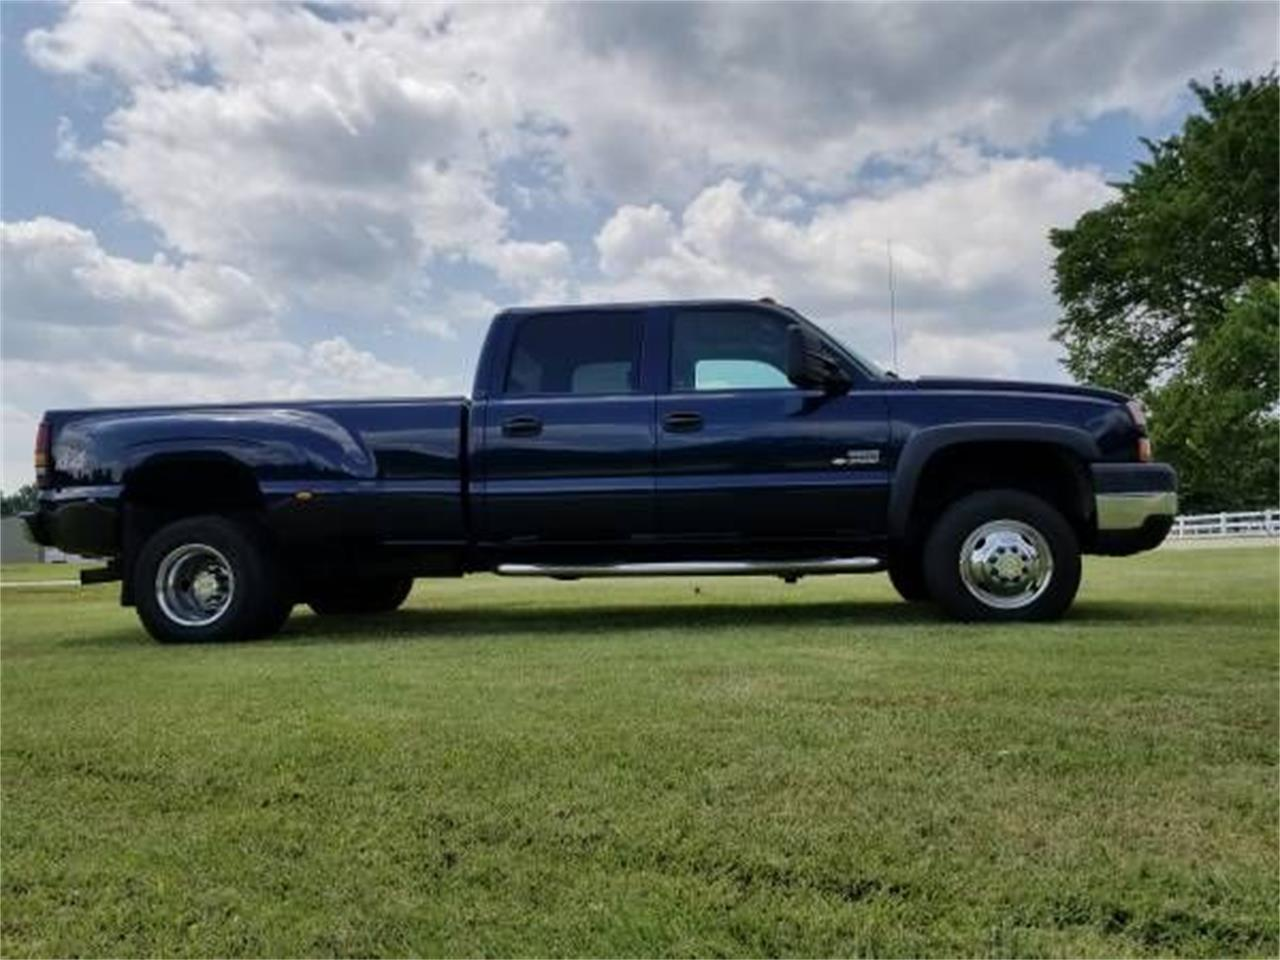 Large Picture of '06 Chevrolet Silverado - $19,895.00 Offered by Classic Car Deals - QPHO